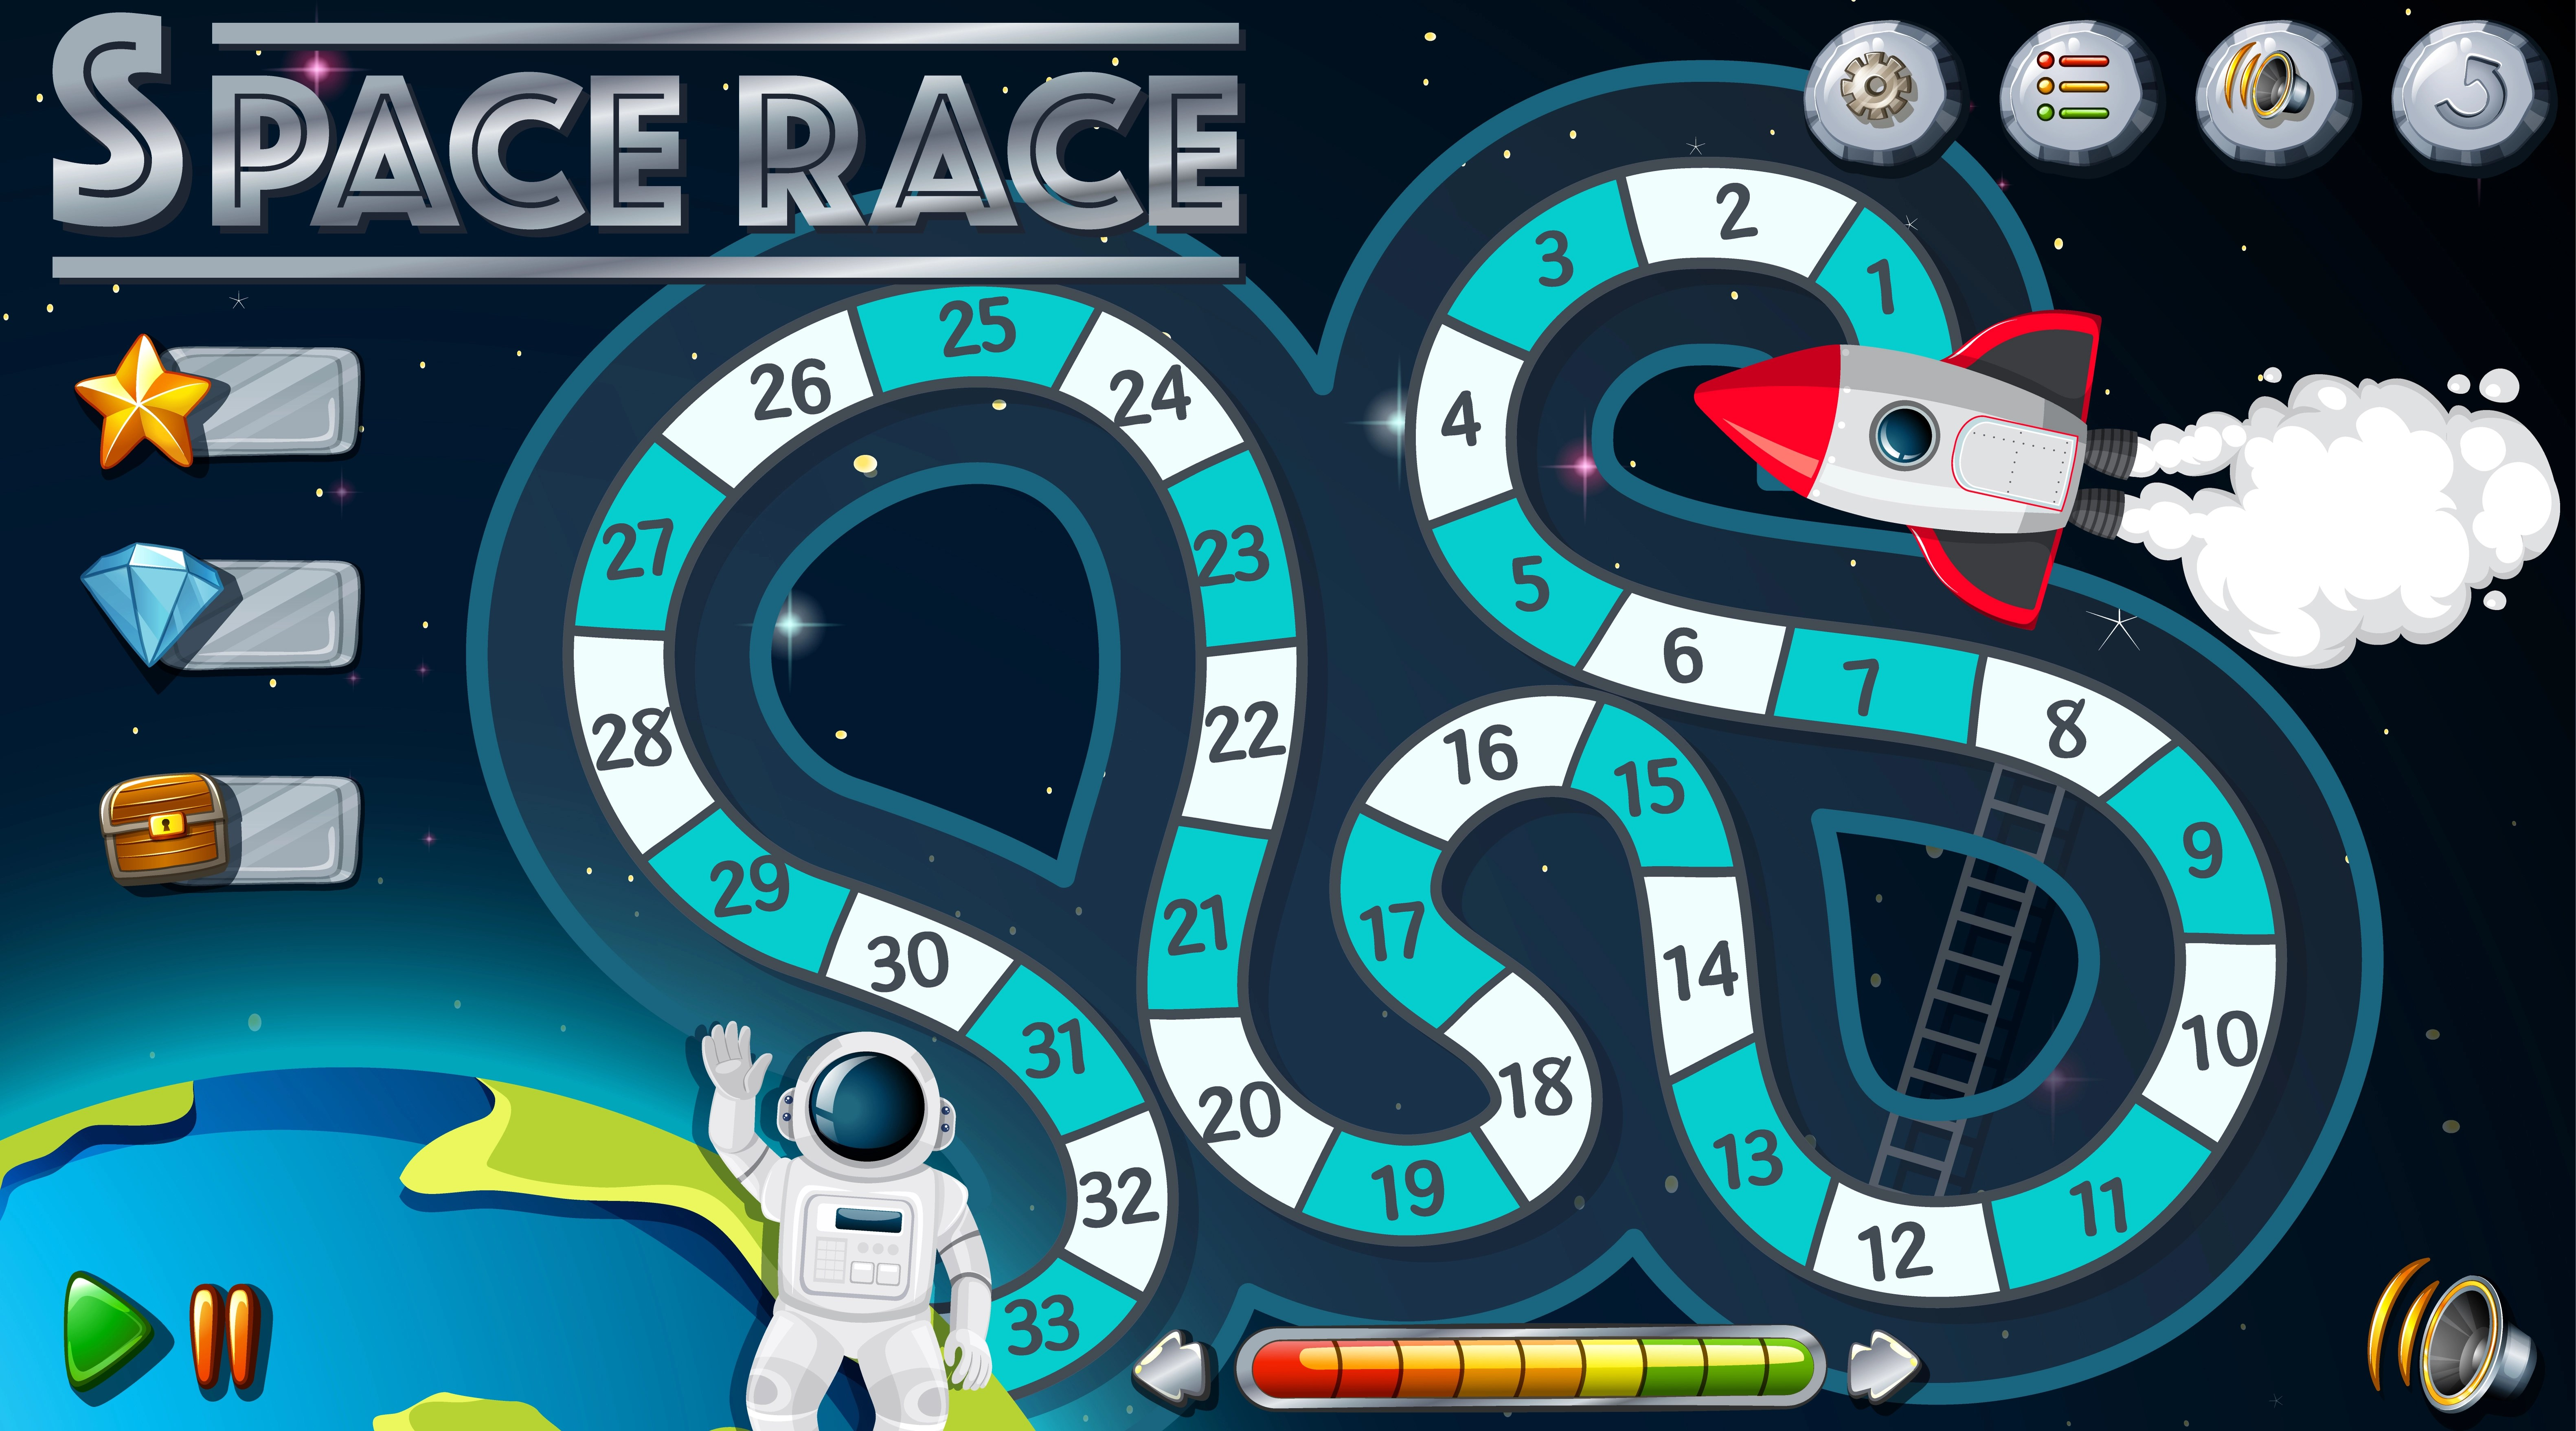 Space Race Board Game Template